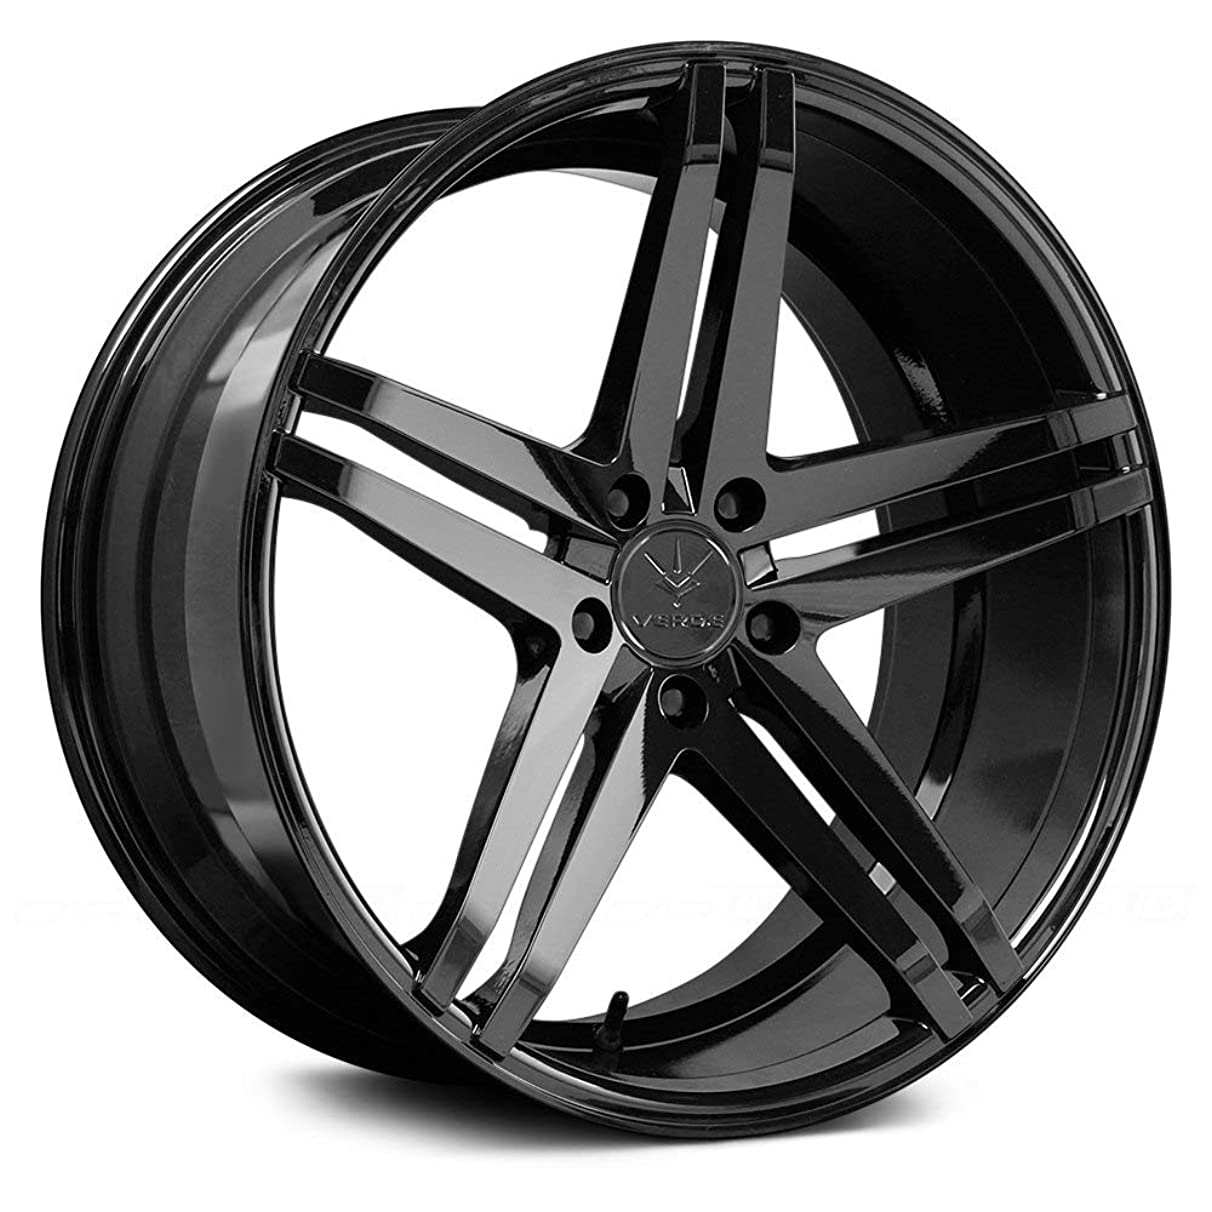 Verde Custom Wheels Parallax Gloss Black Wheel with Painted Finish (19 x 9.5 inches /5 x 120 mm, 22 mm Offset)